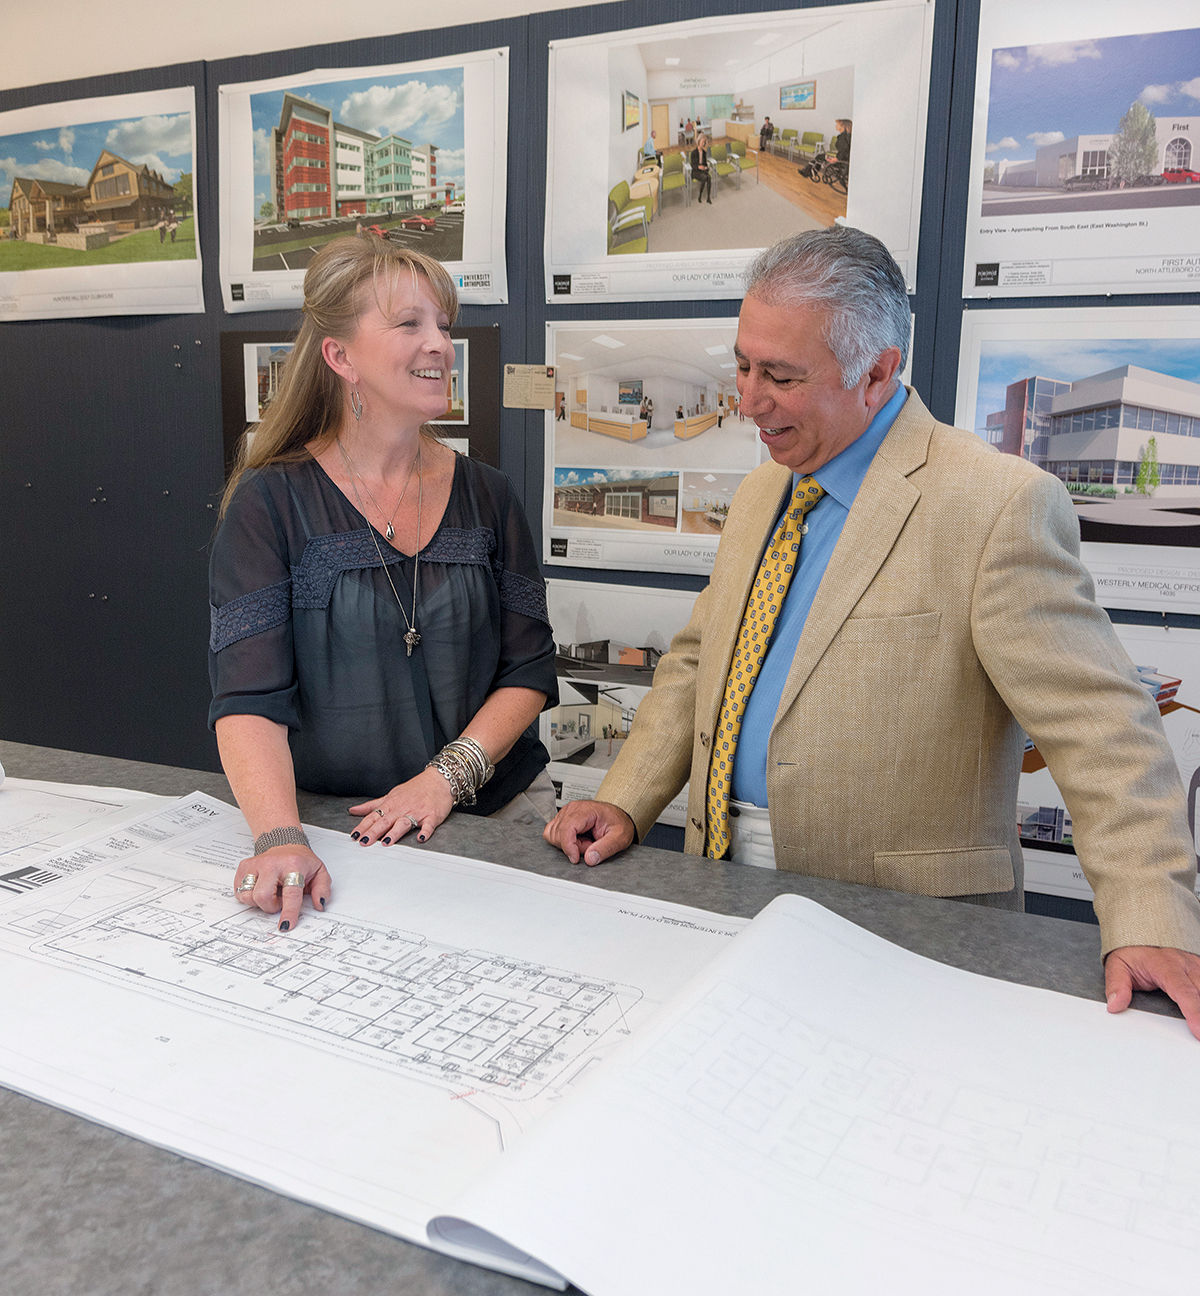 SEEKING WORK PRODUCT RESPECT: Jennifer Space, an associate at n e m d architects inc., and president of the Rhode Island branch of the American Institute of Architects, looks over some plans with n e m d architects President Mehdi Khosrovani. Space believes local firms are bypassed too often for high-profile work. / PBN PHOTO/MICHAEL SALERNO